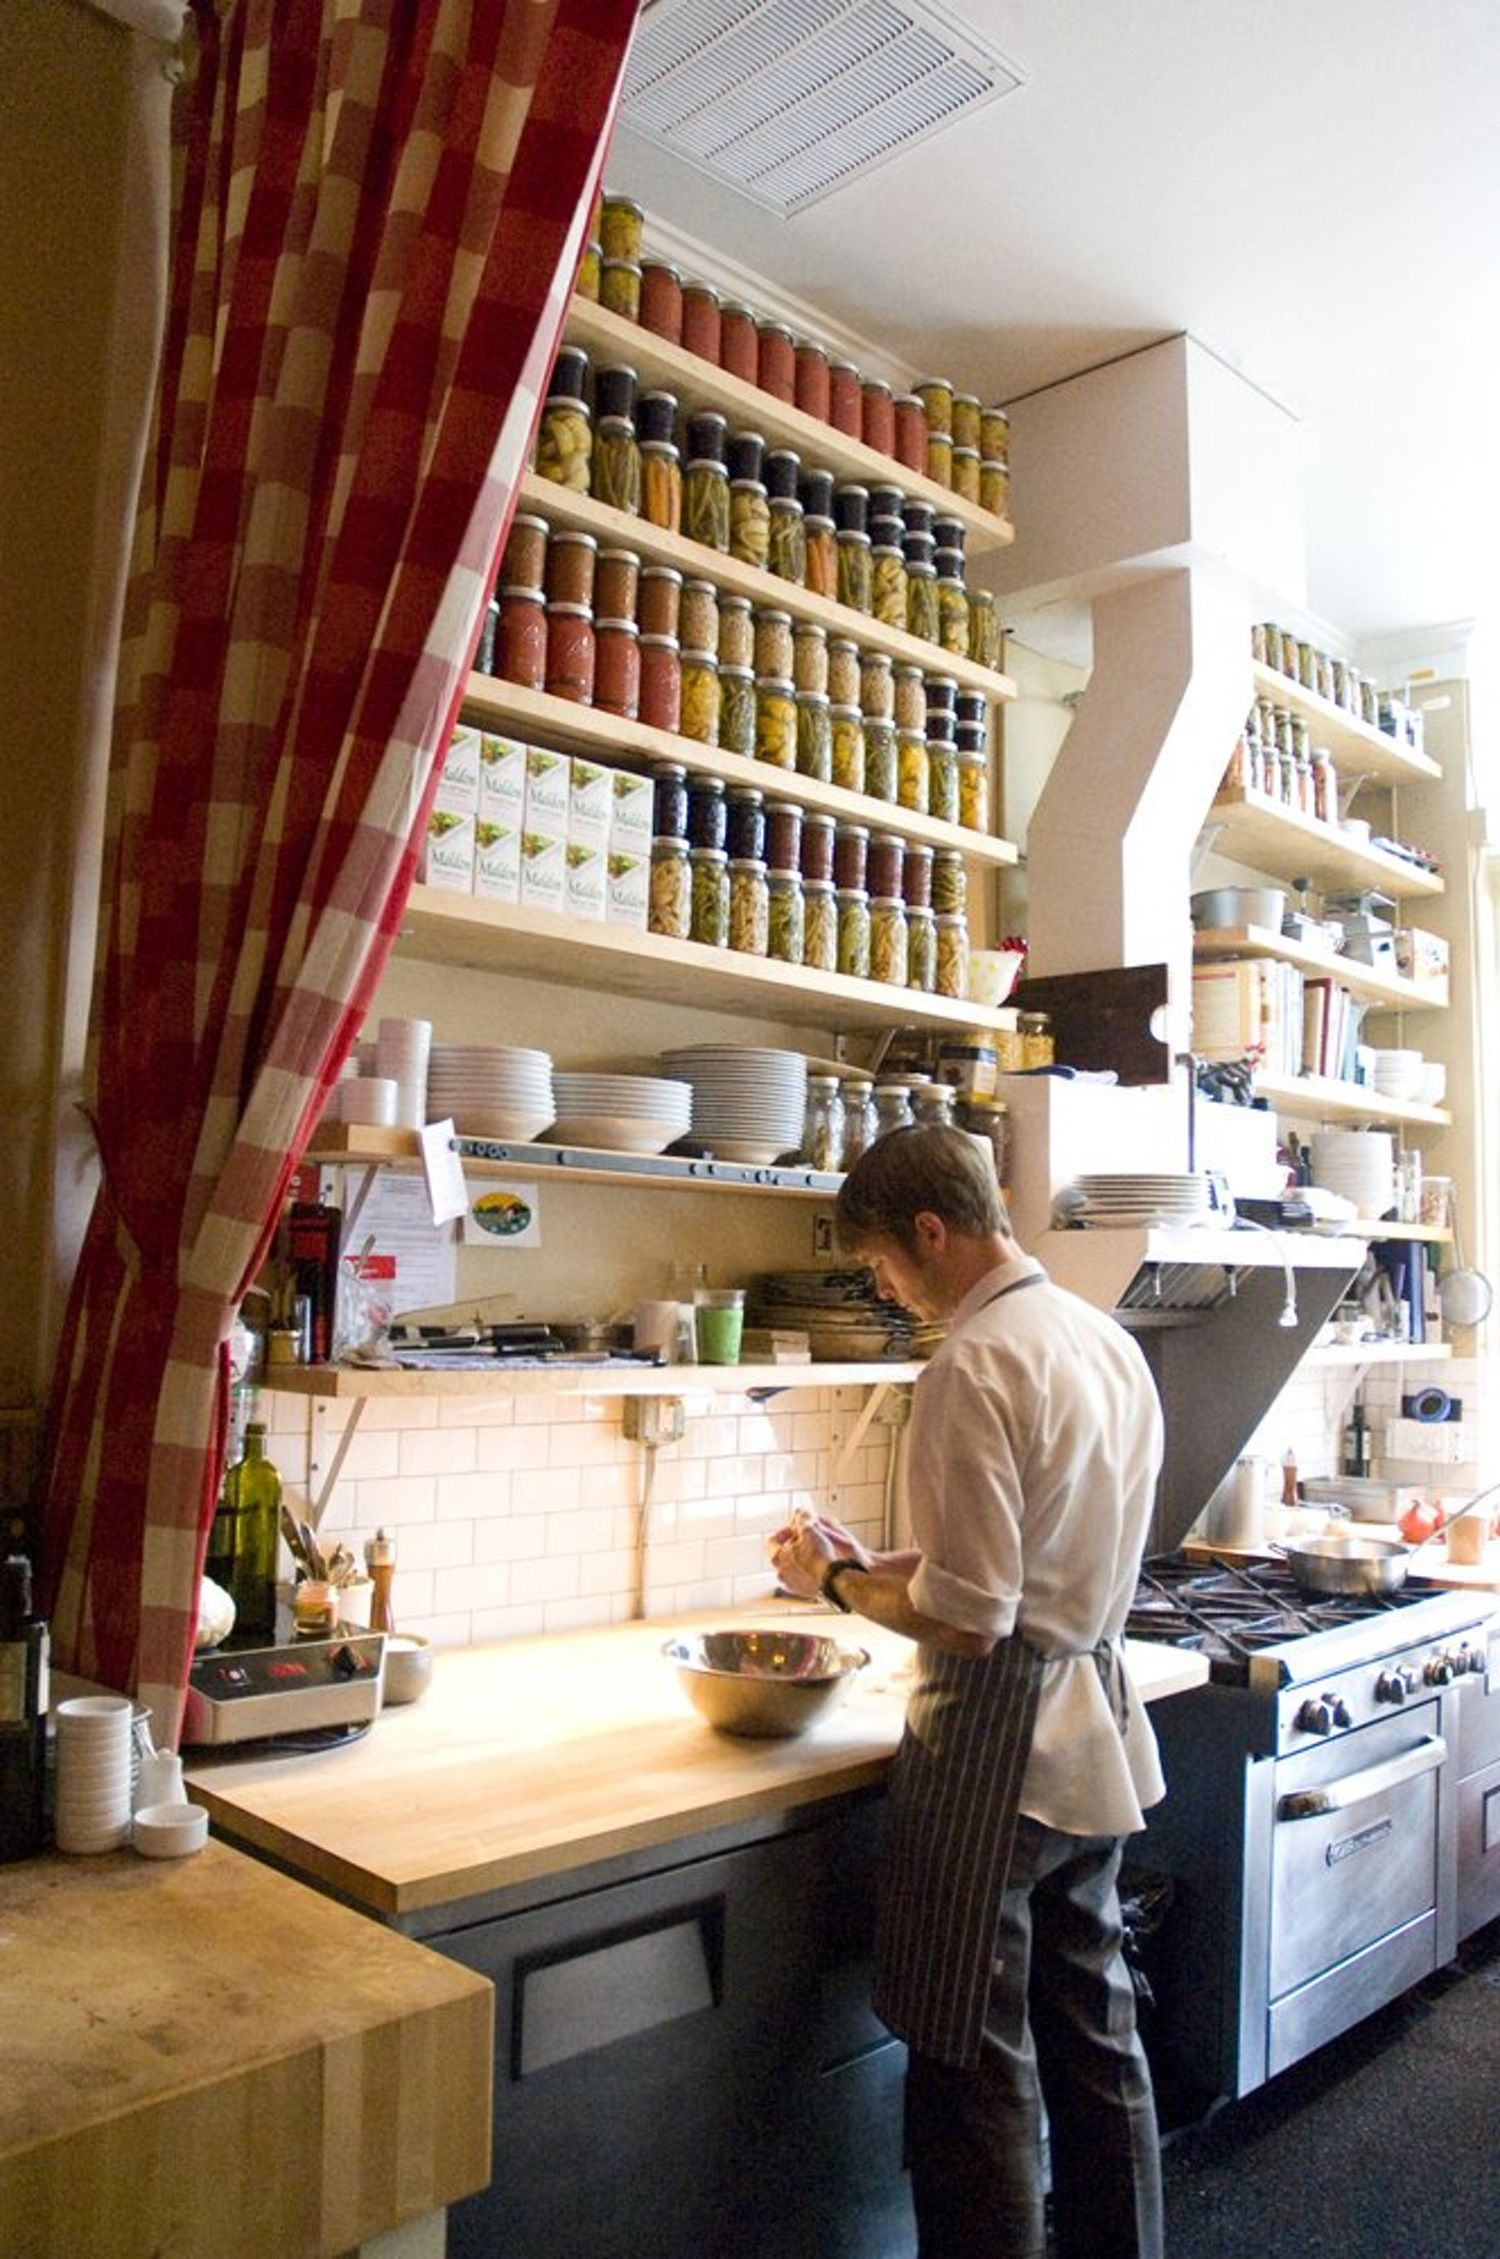 5 things we can learn from this restaurant kitchen | restaurant